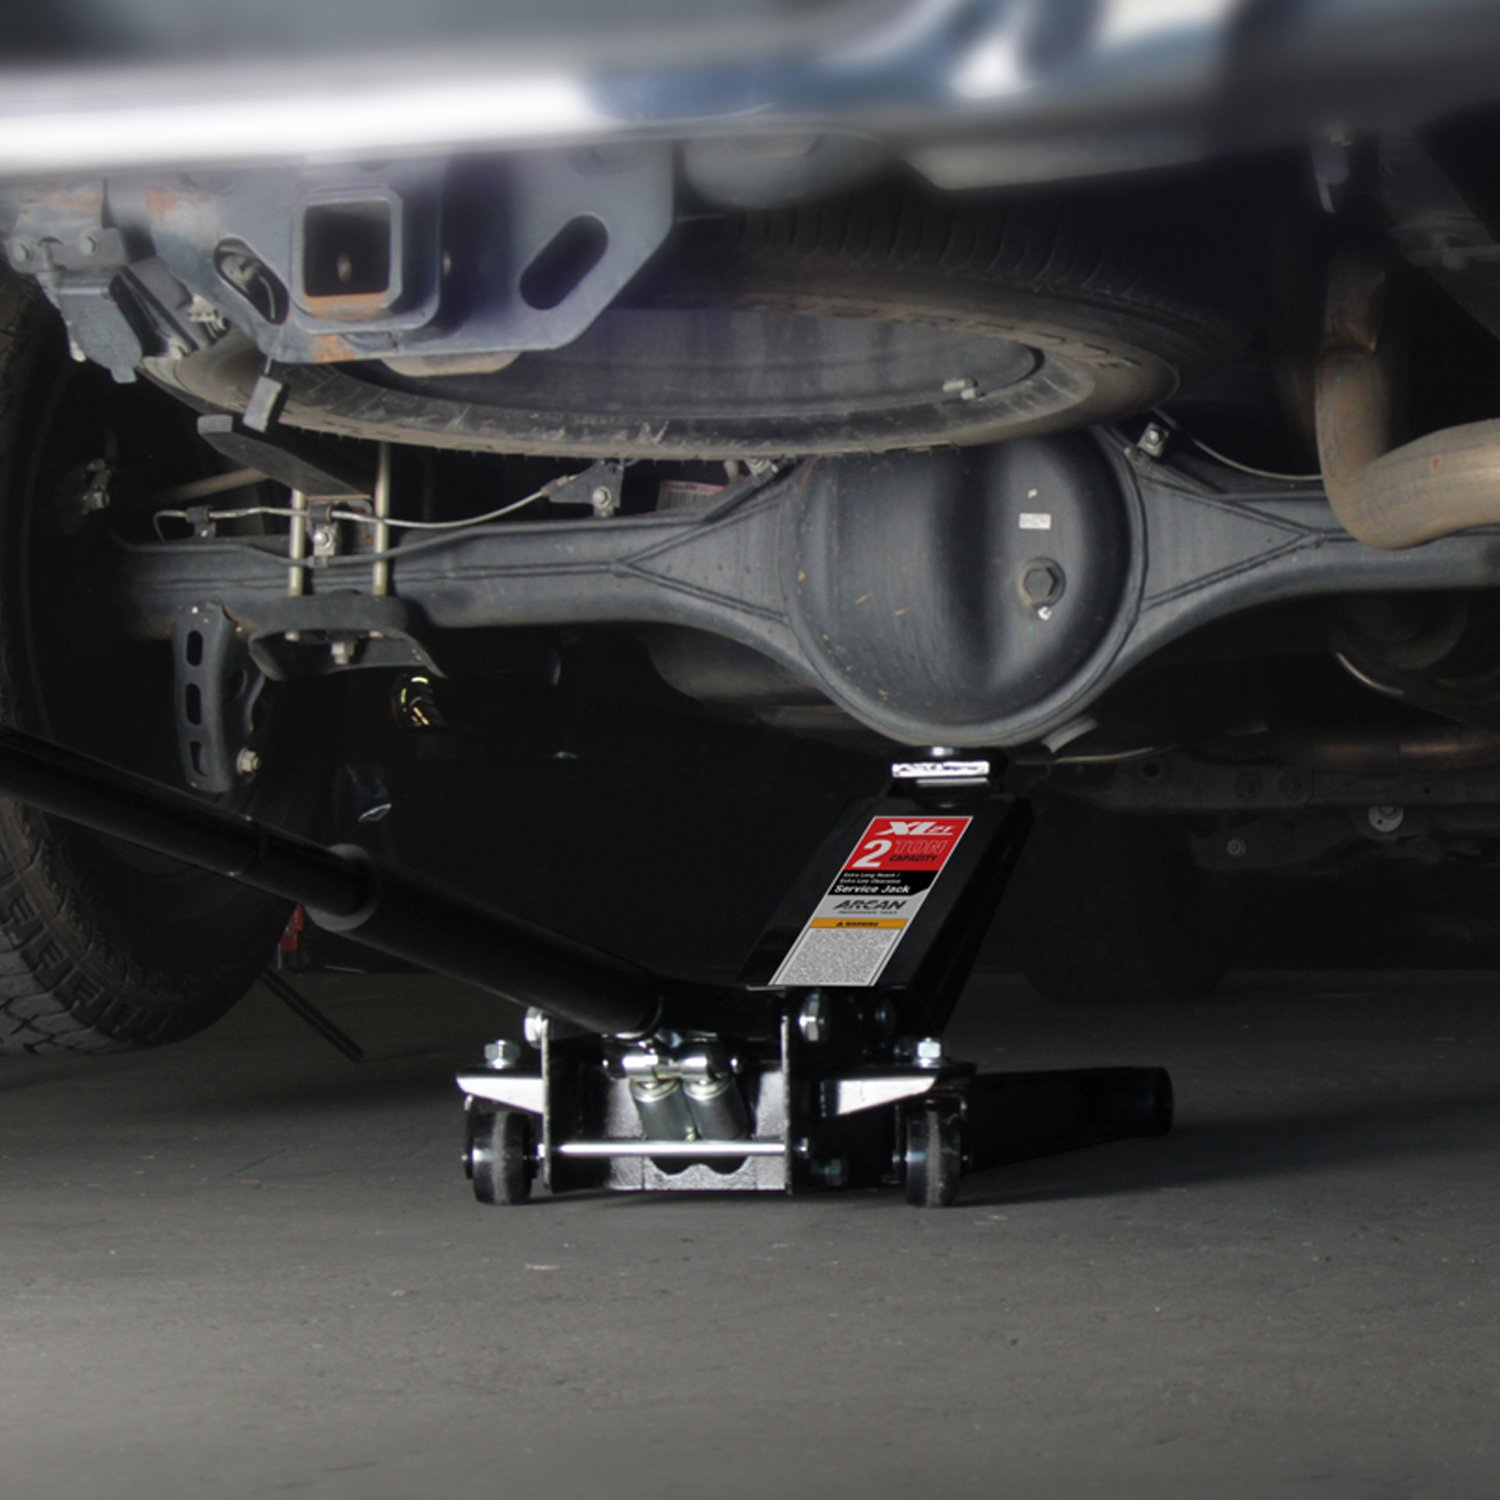 demonstration of Arcan XL2T Under Rear differential of car